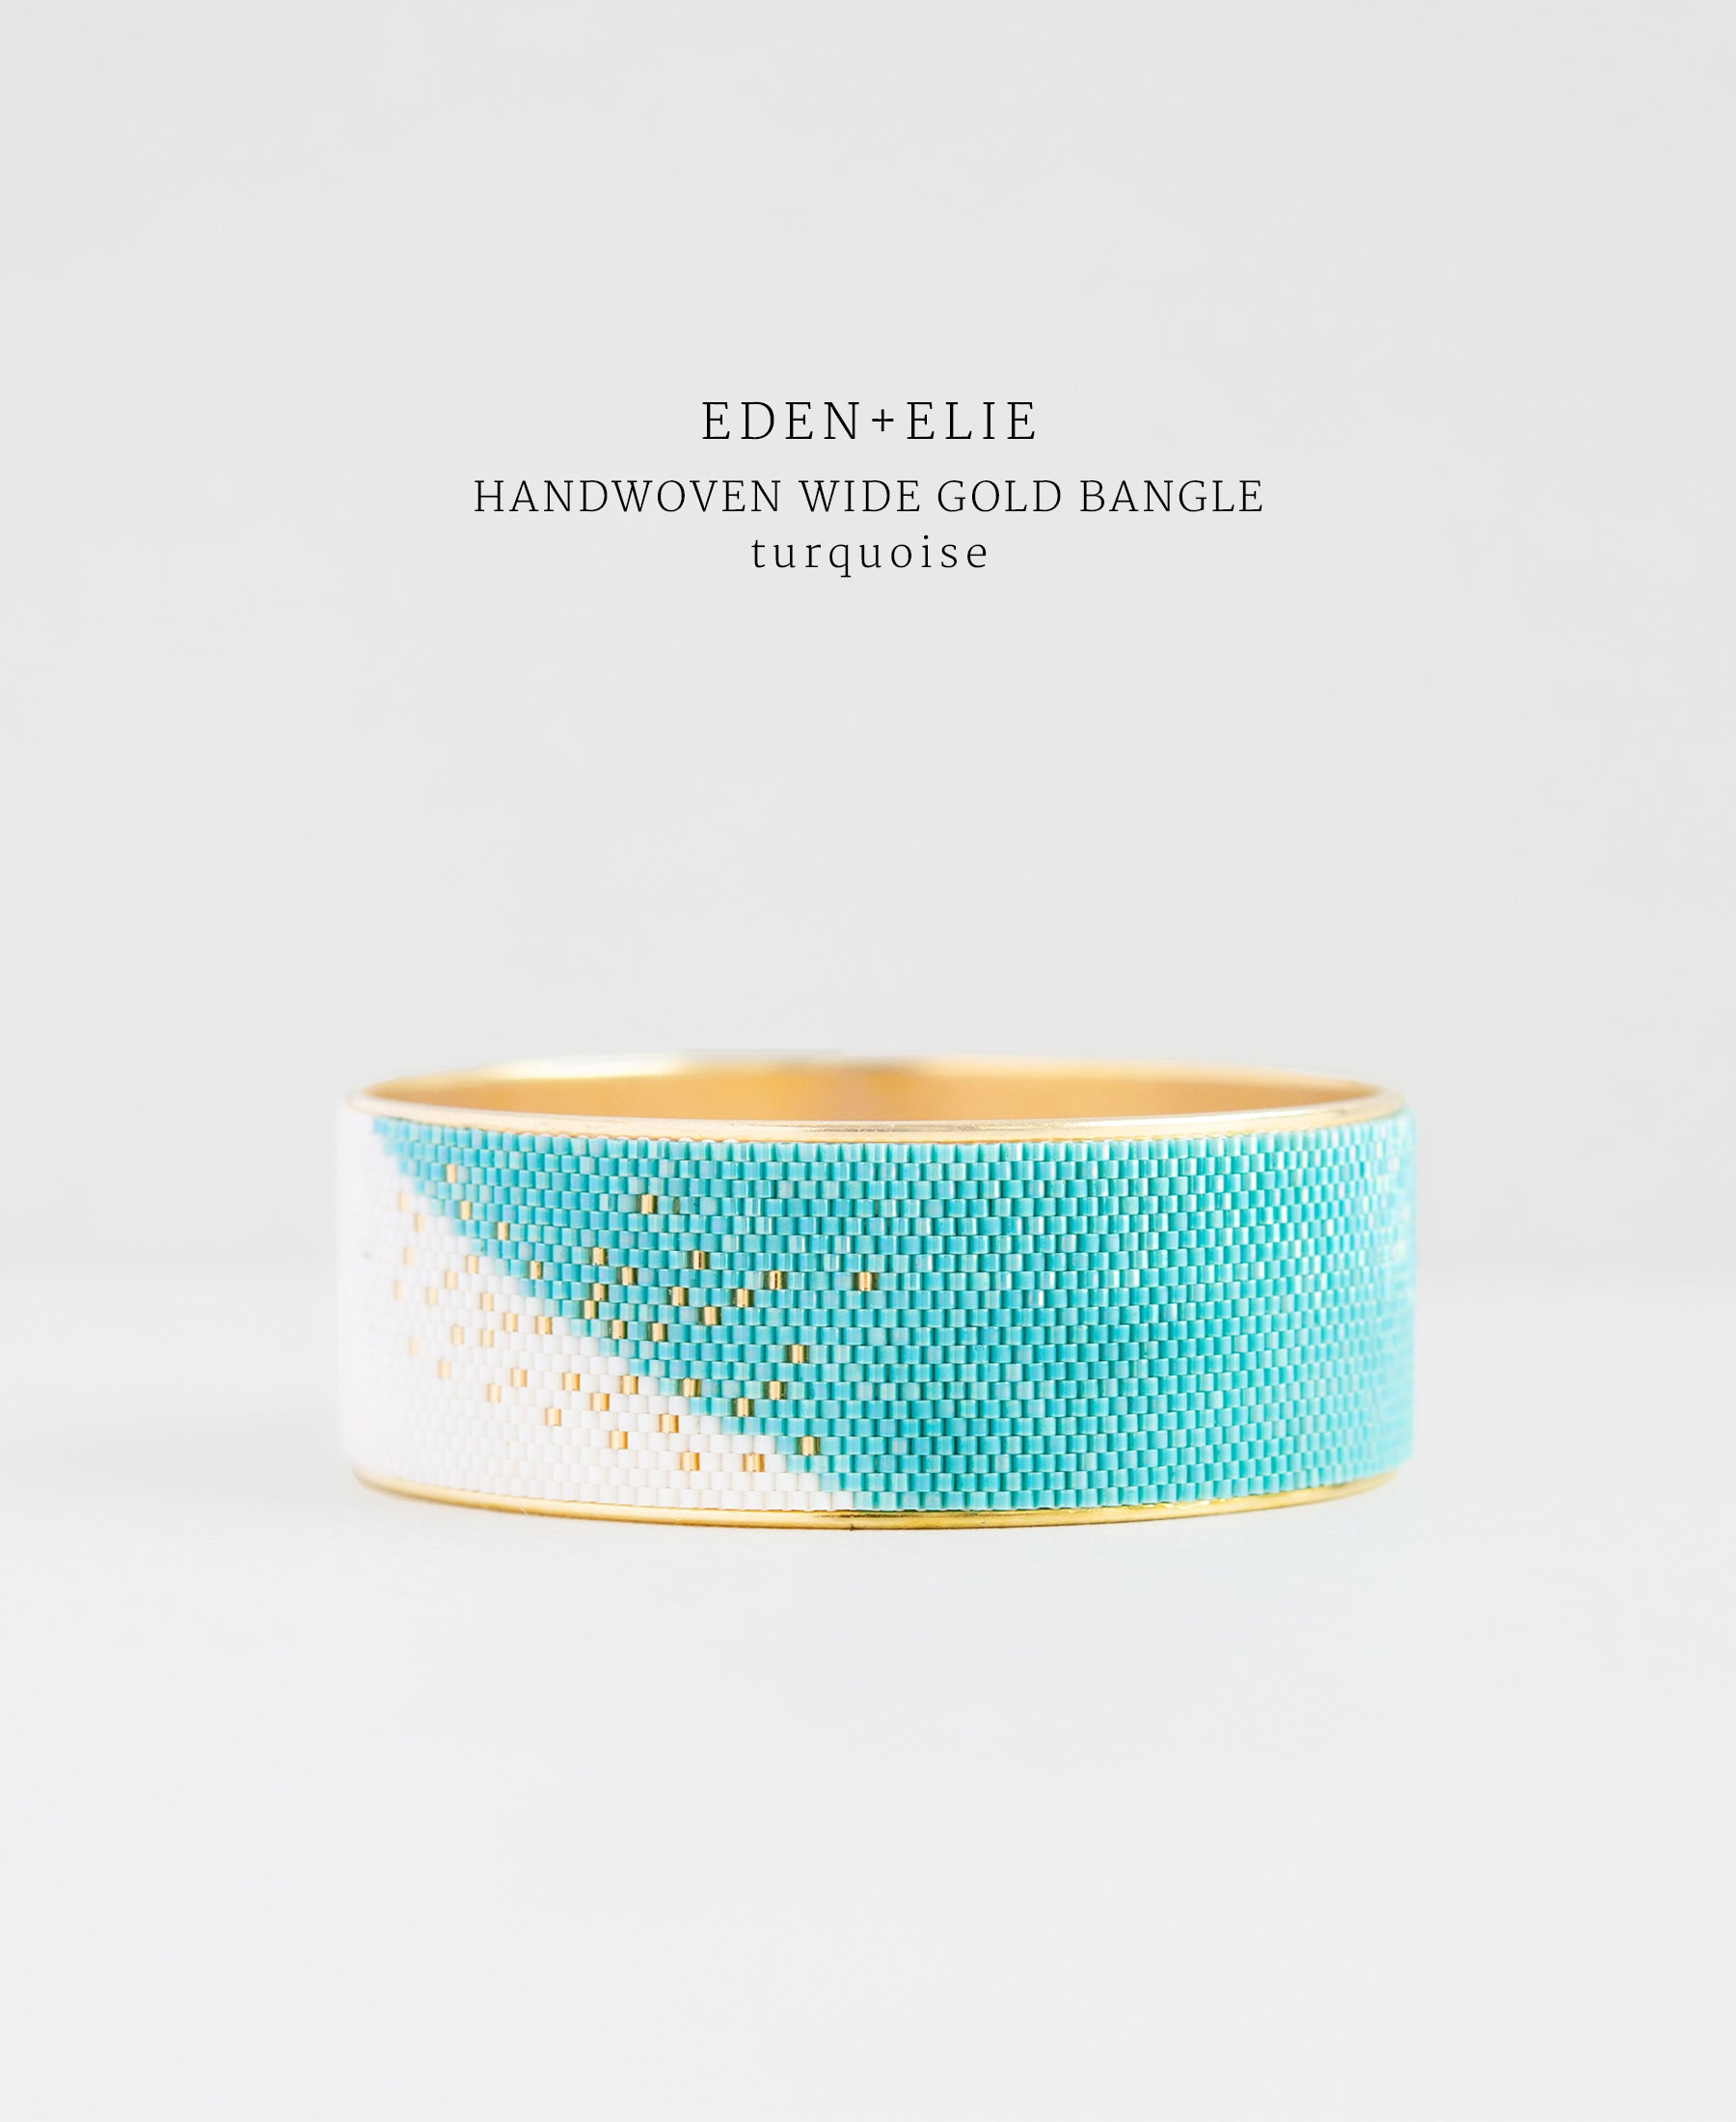 EDEN + ELIE gold plated jewelry Everyday wide gold bangle - turquoise